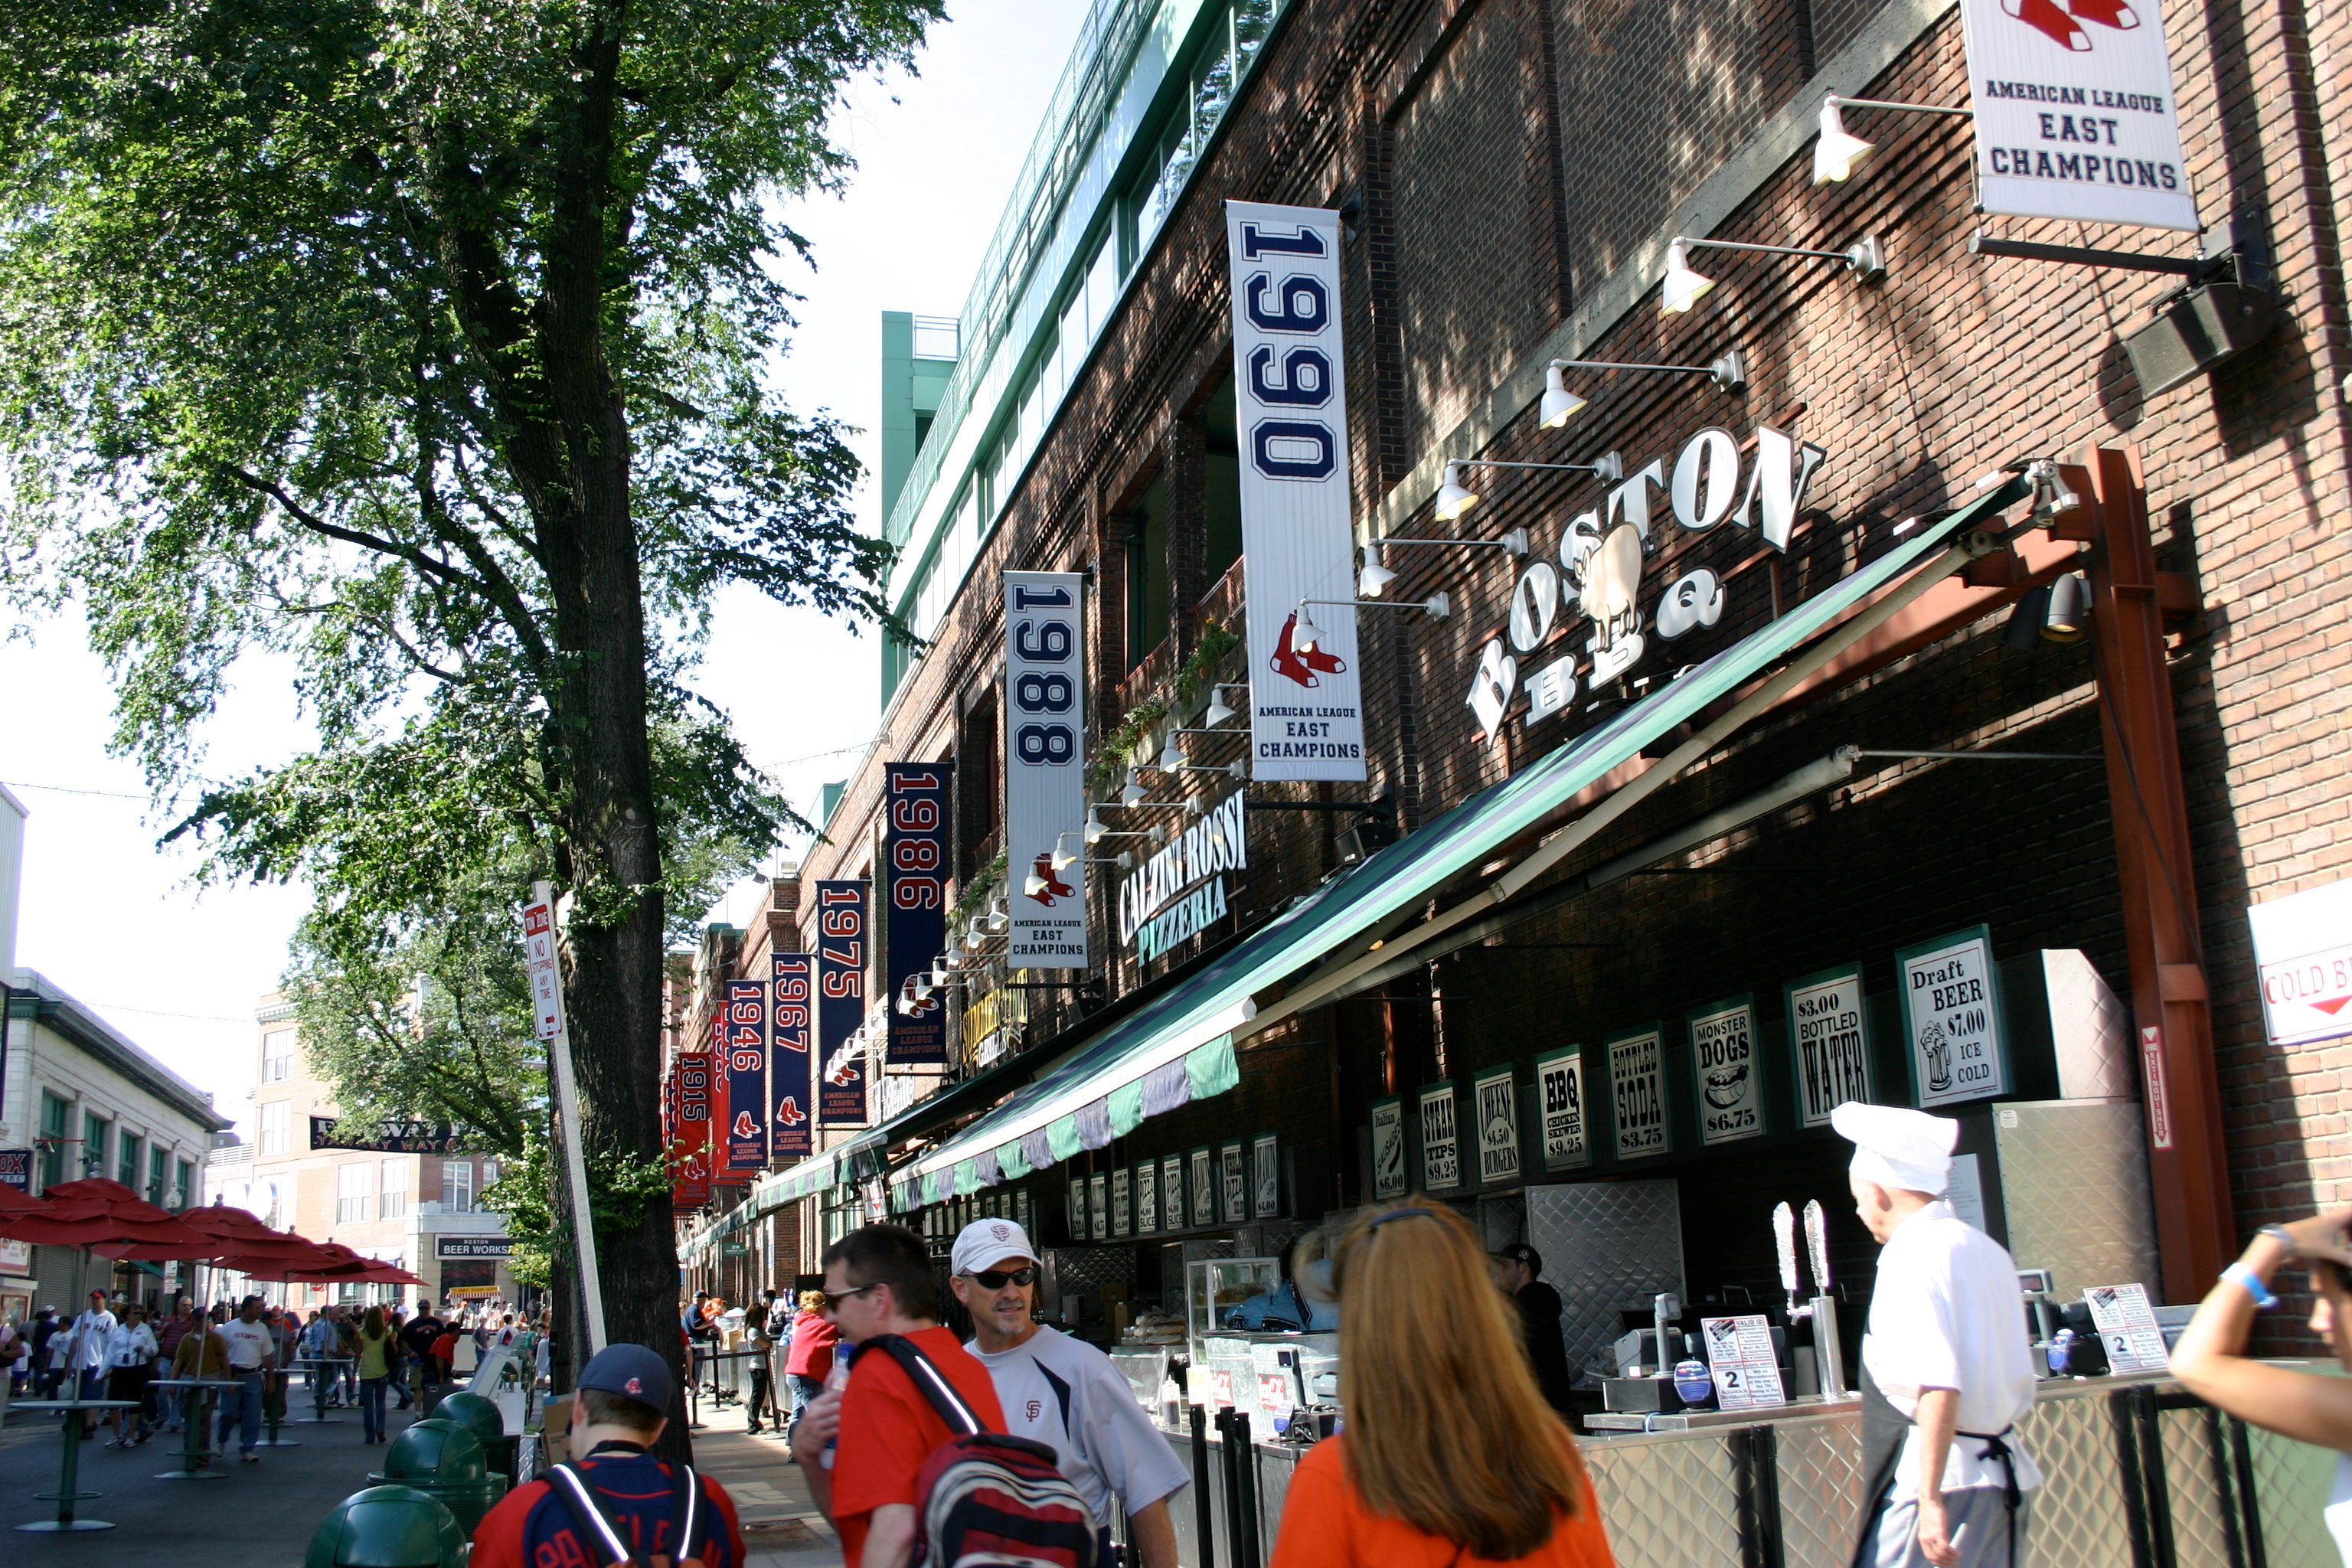 Yawkey Way, part of Fenway Park